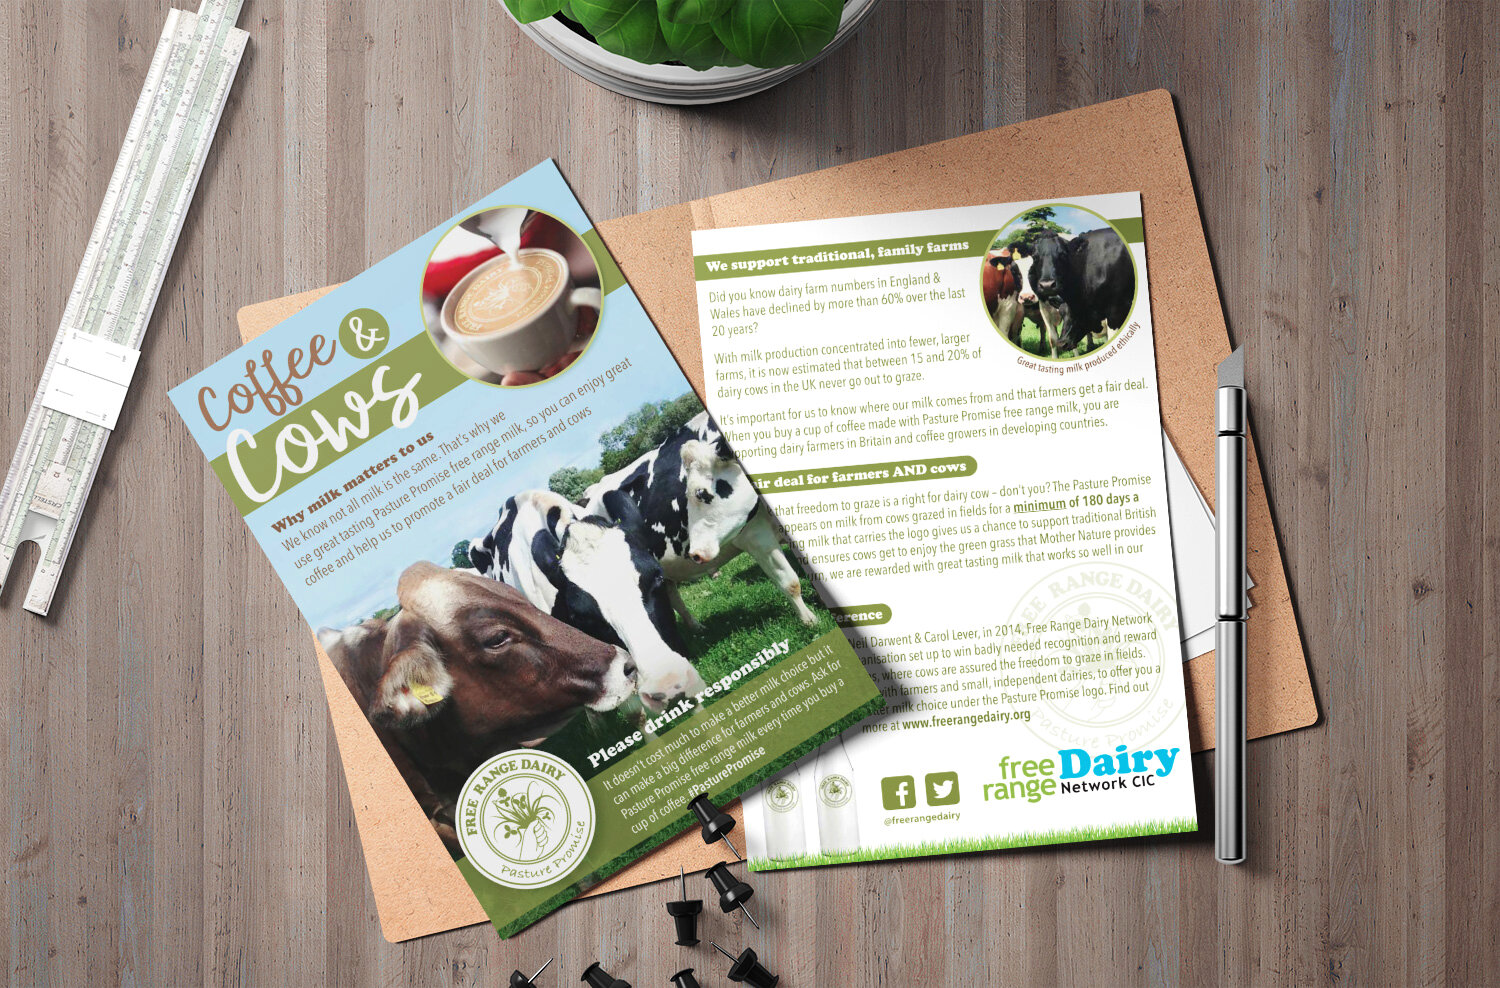 Coffee-Cows-flyers-web.jpg